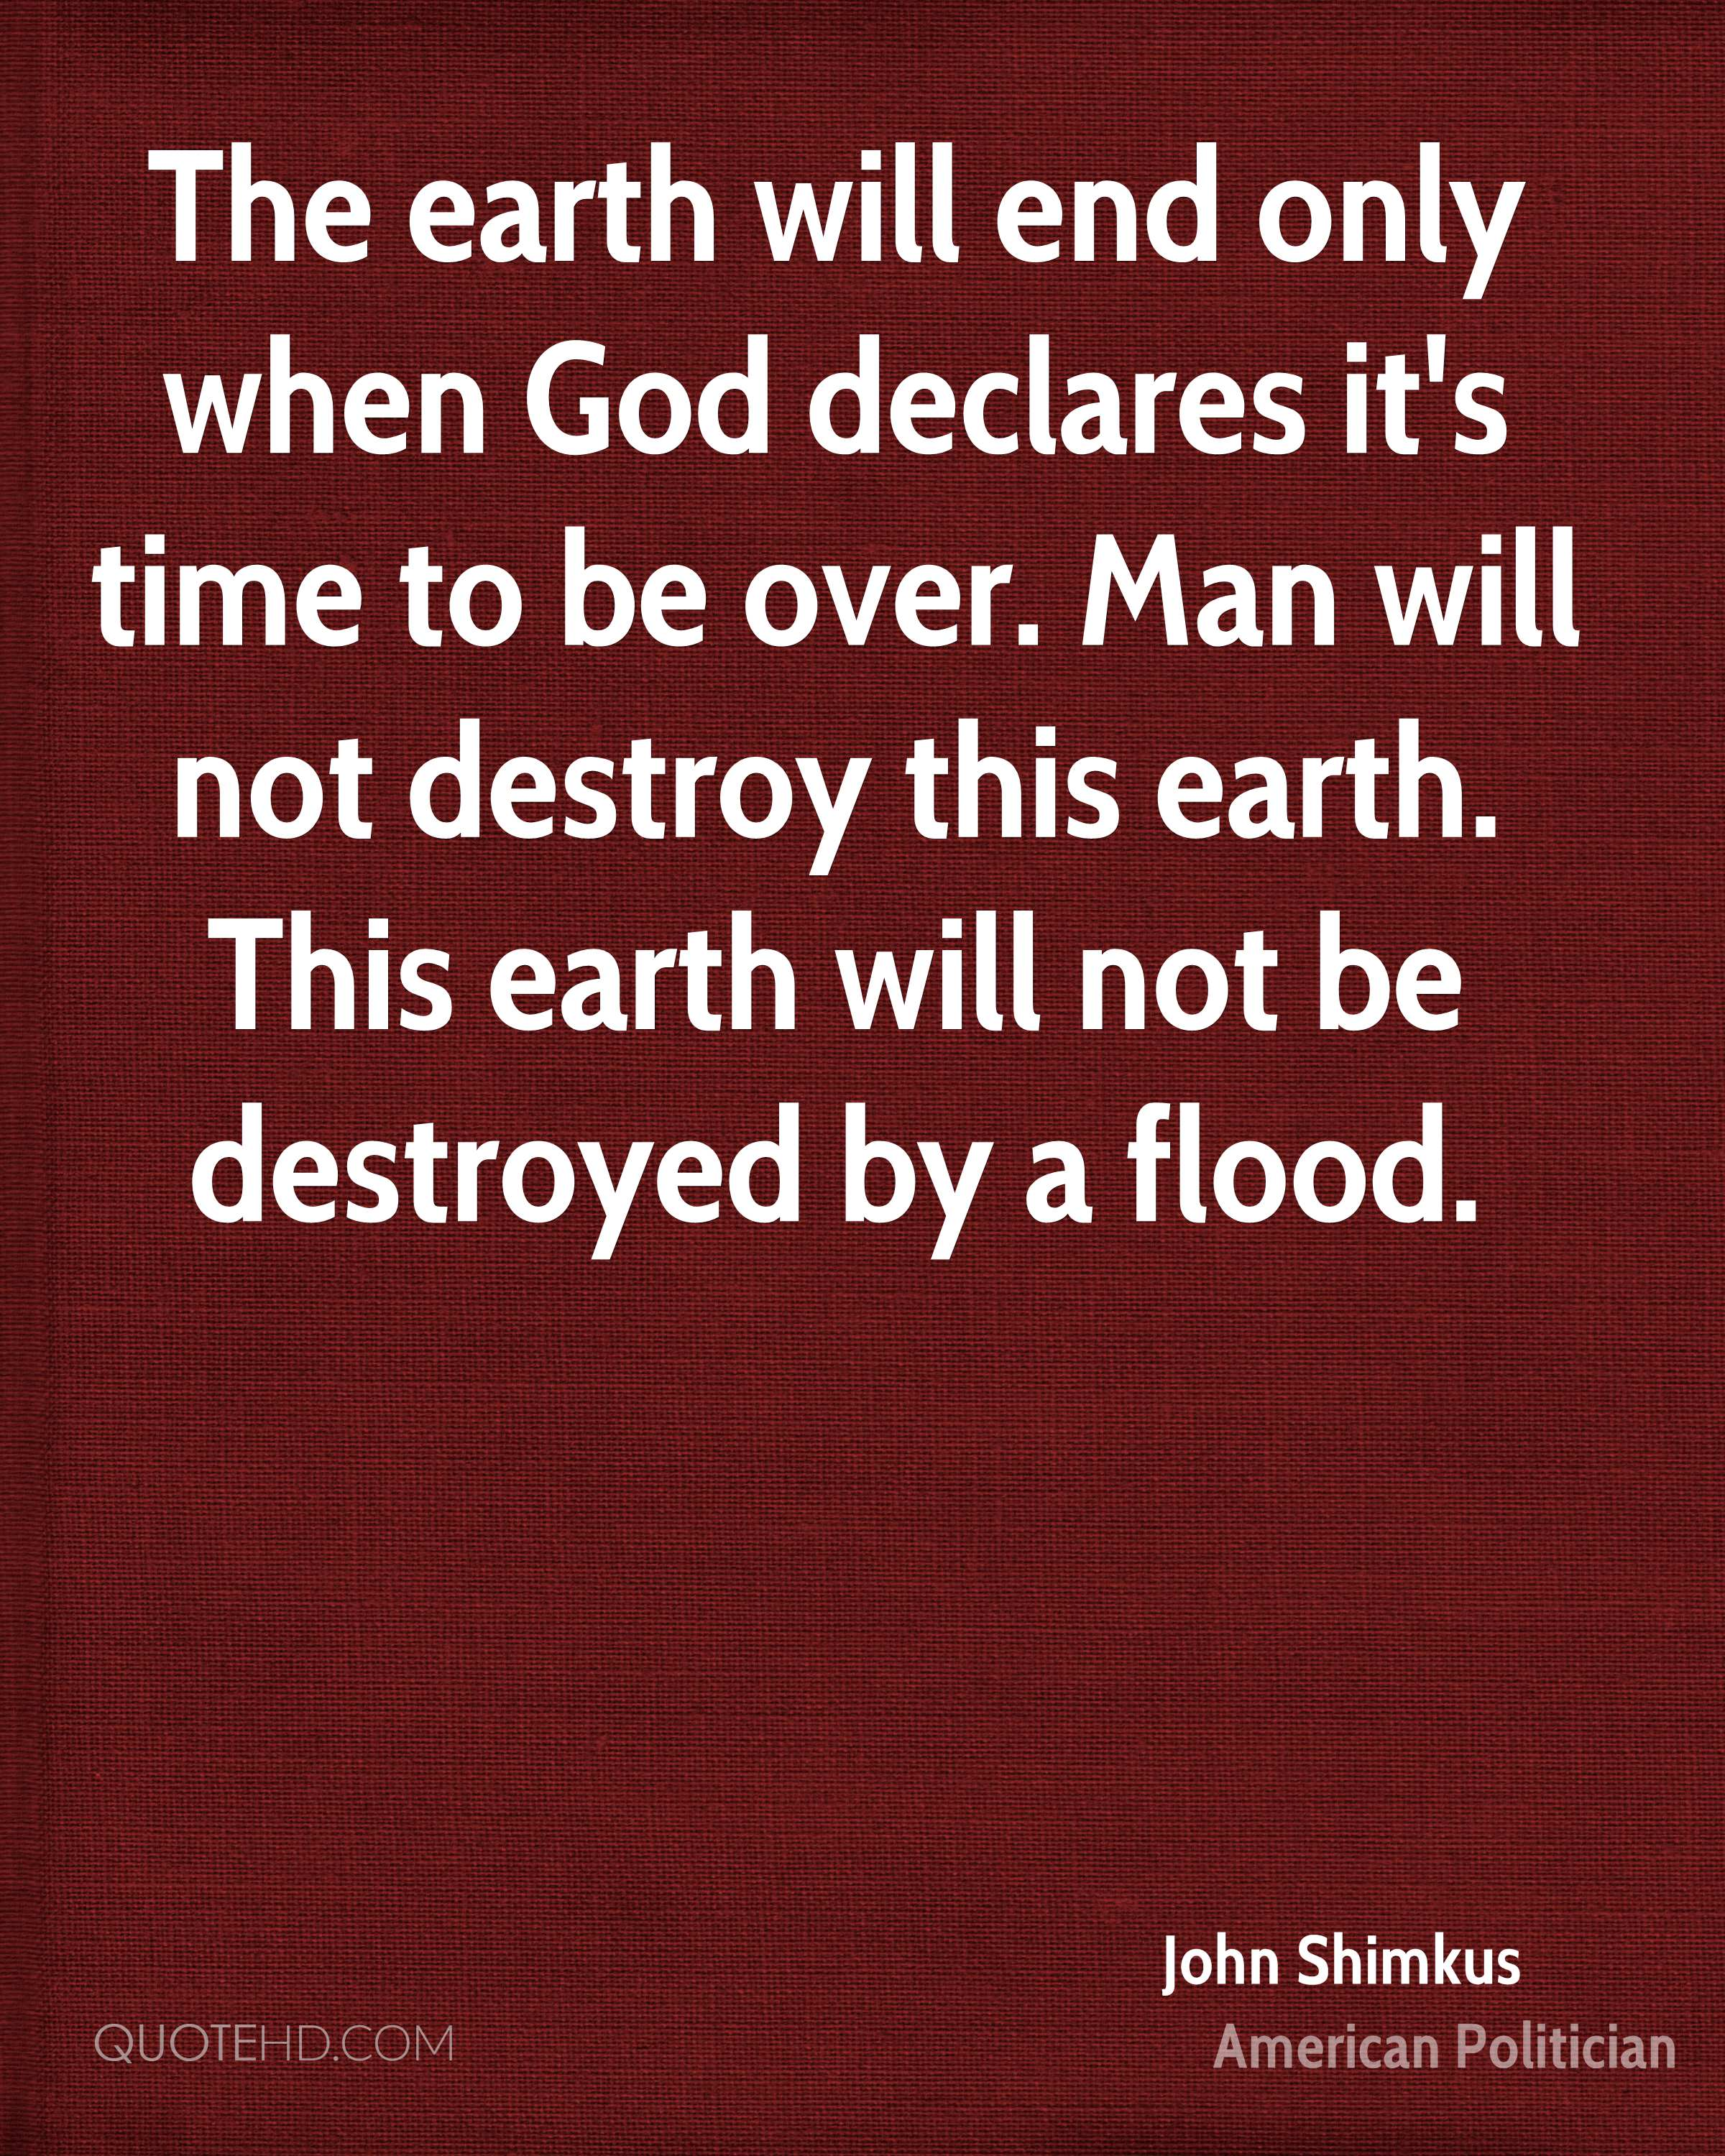 The earth will end only when God declares it's time to be over. Man will not destroy this earth. This earth will not be destroyed by a flood.